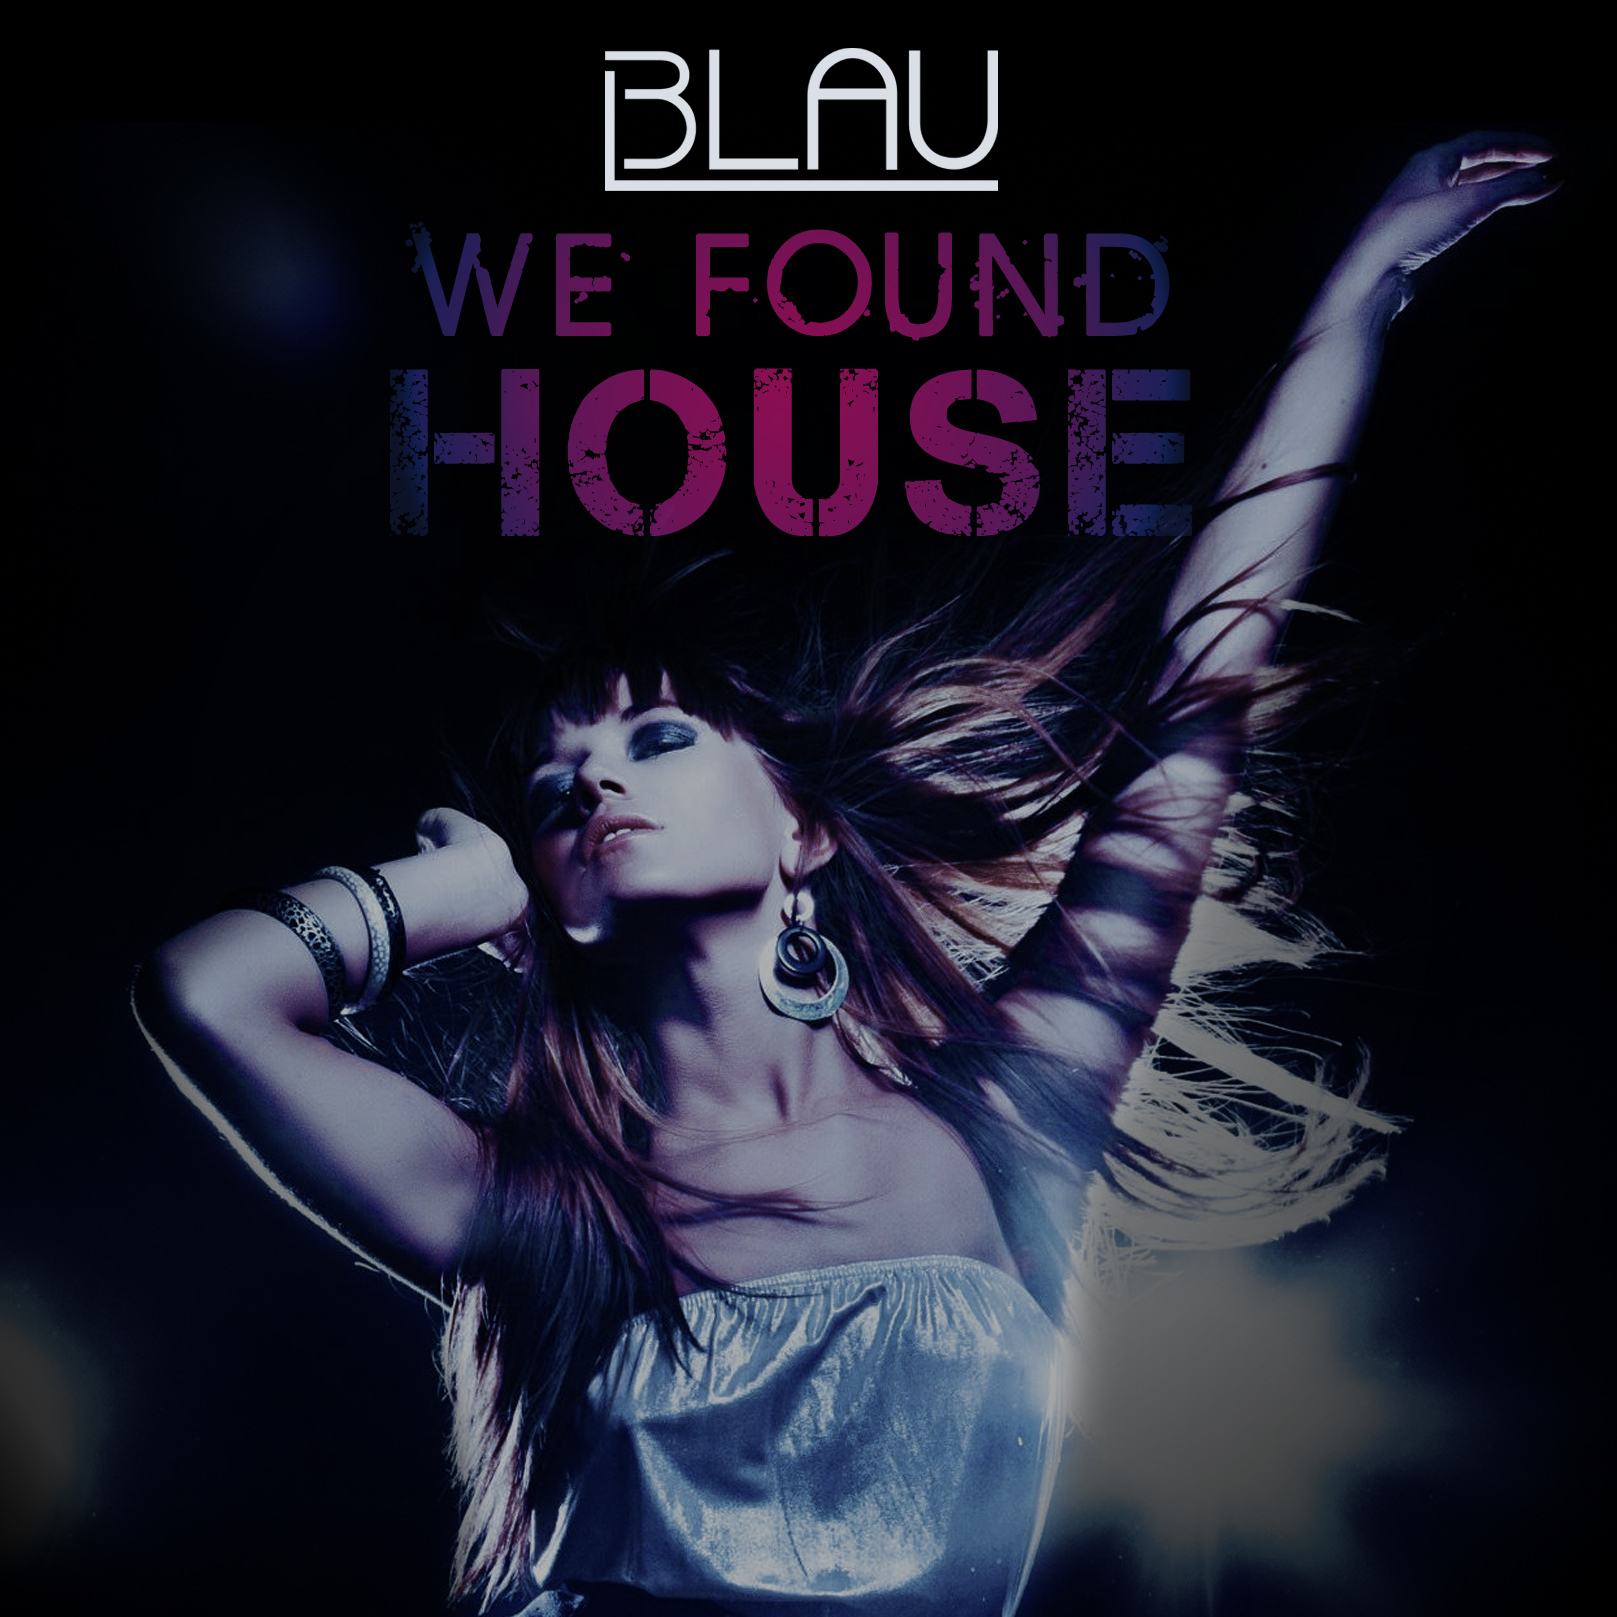 We Found House (3LAU Modertalking Bootleg) – By 3LAU